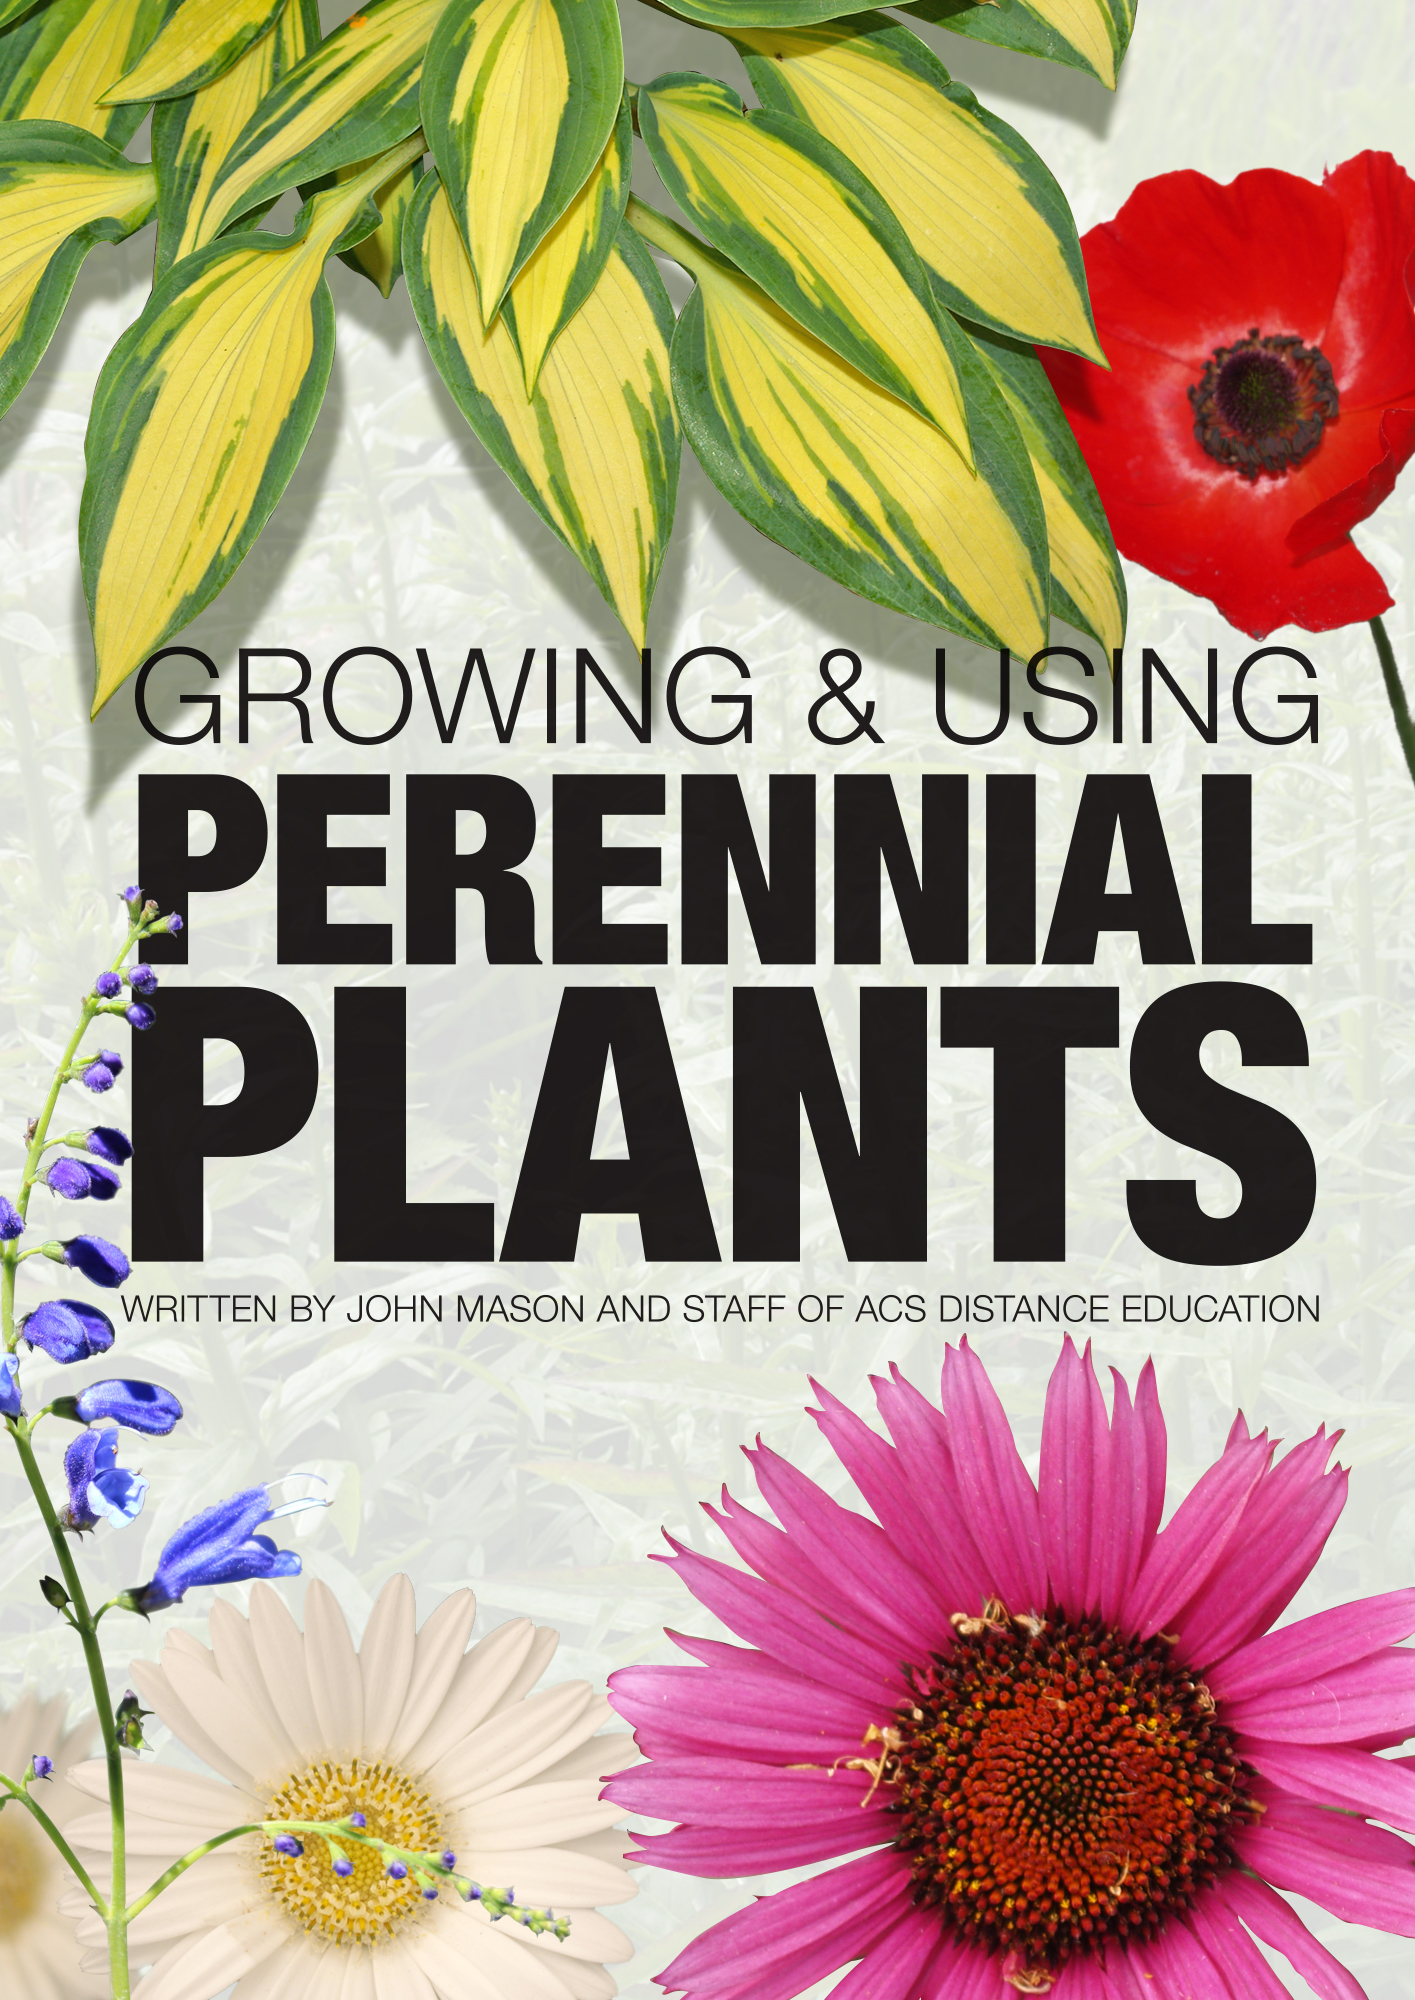 Acs distance education the latest from our multidisciplinary maggi brown is one of the tutors at acs distance education and offers the following useful tips on perennials fandeluxe Images